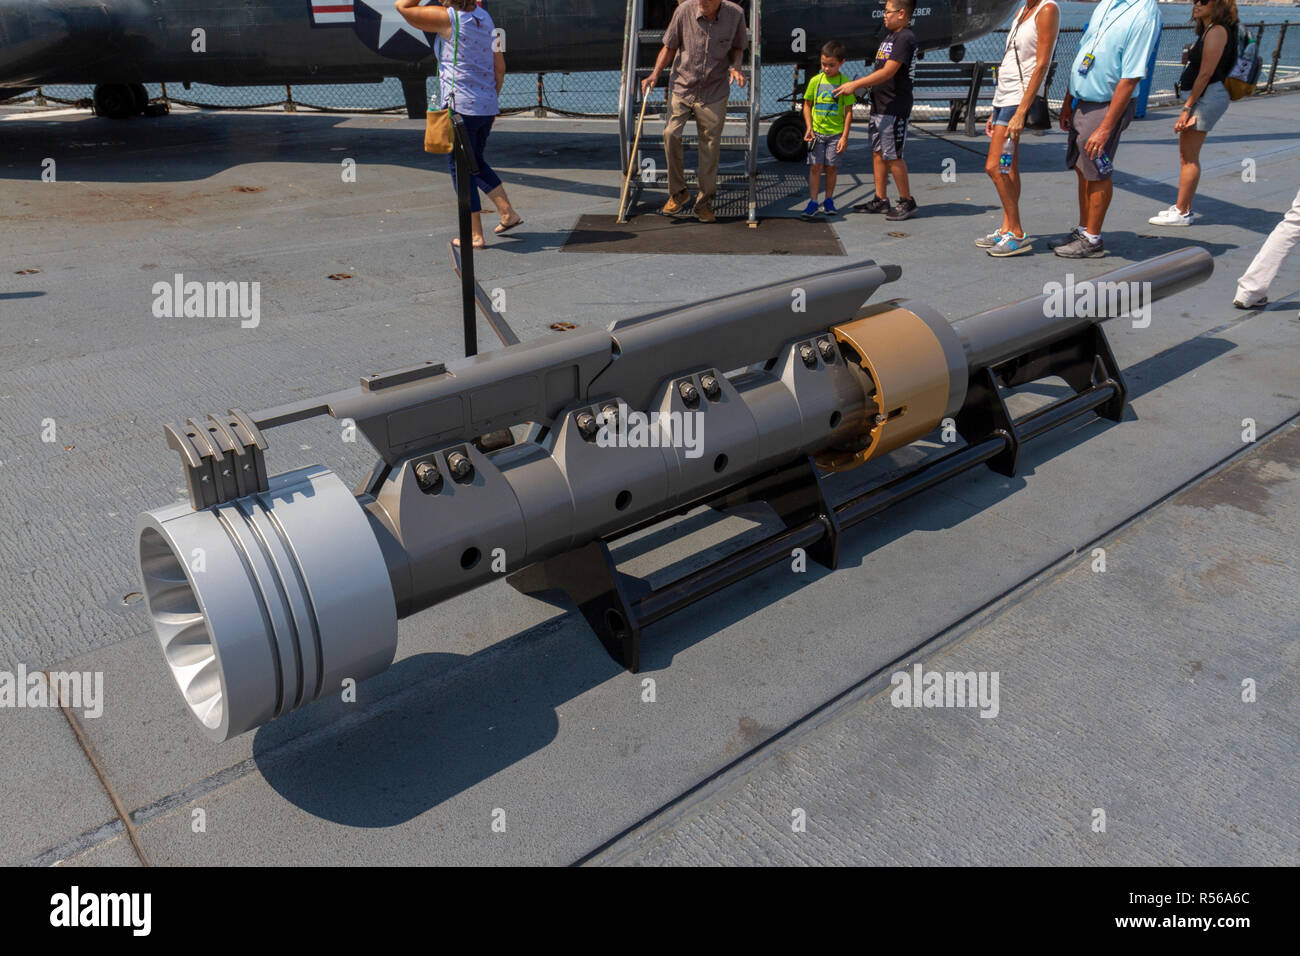 A cylinder piston from the type of steam catapult previously installed on the USS Midway, San Diego, California, United States. - Stock Image